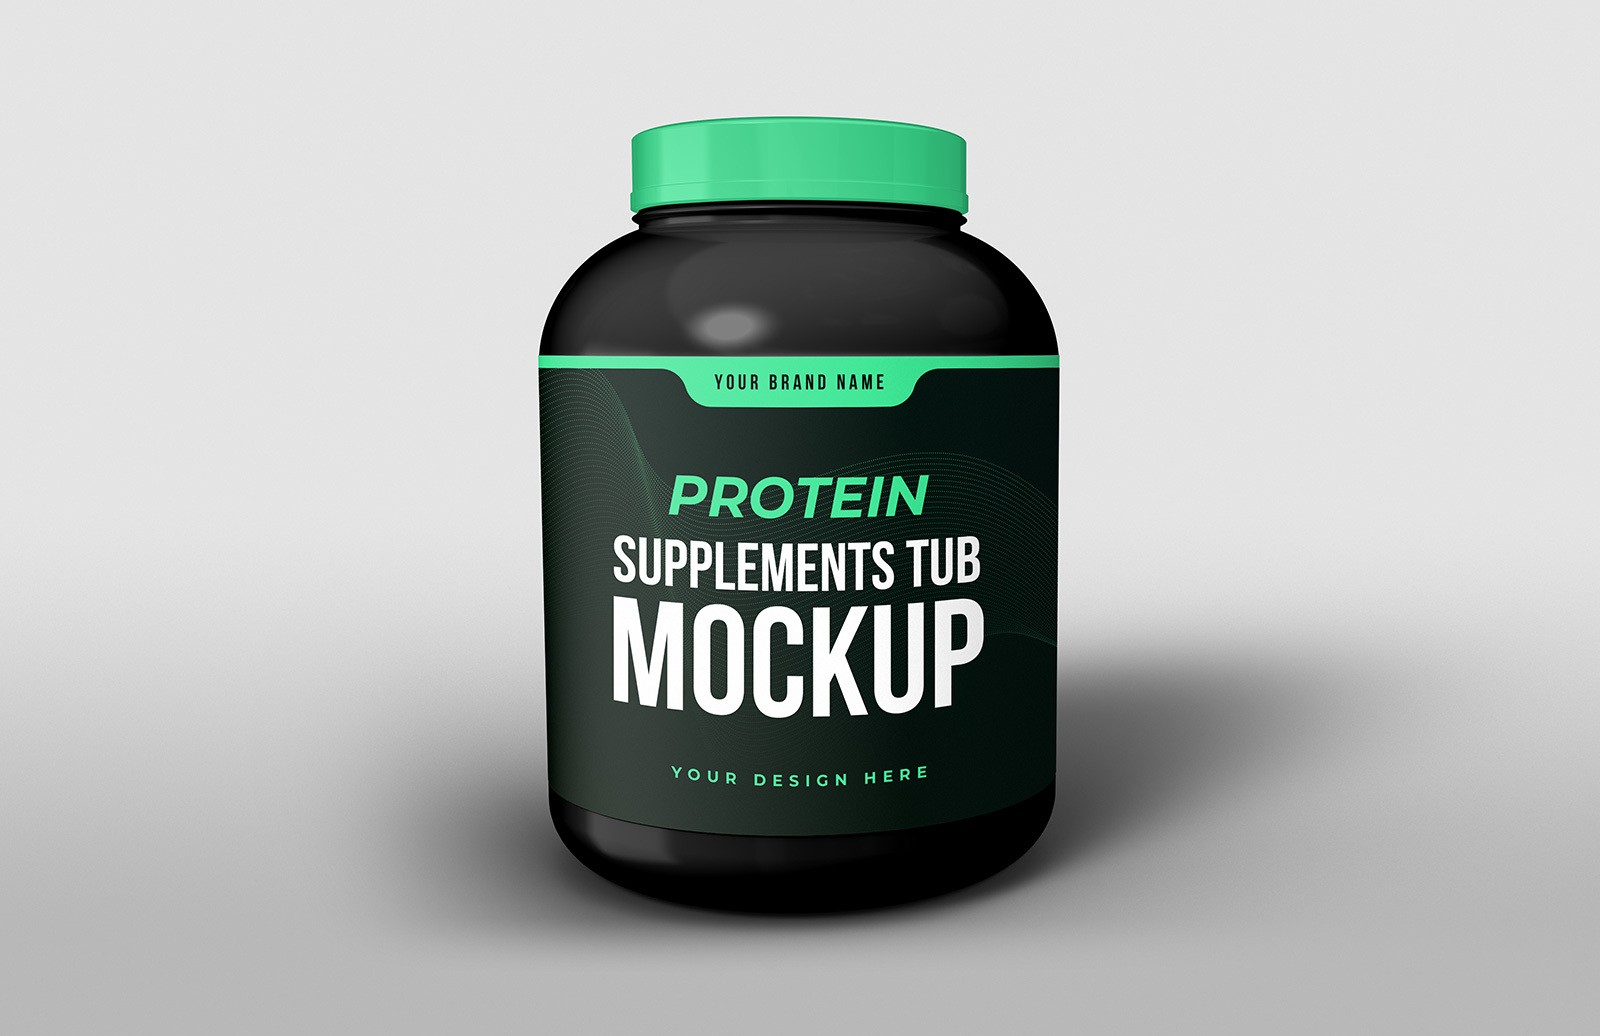 Protein Supplements Tub Mockup Preview 1